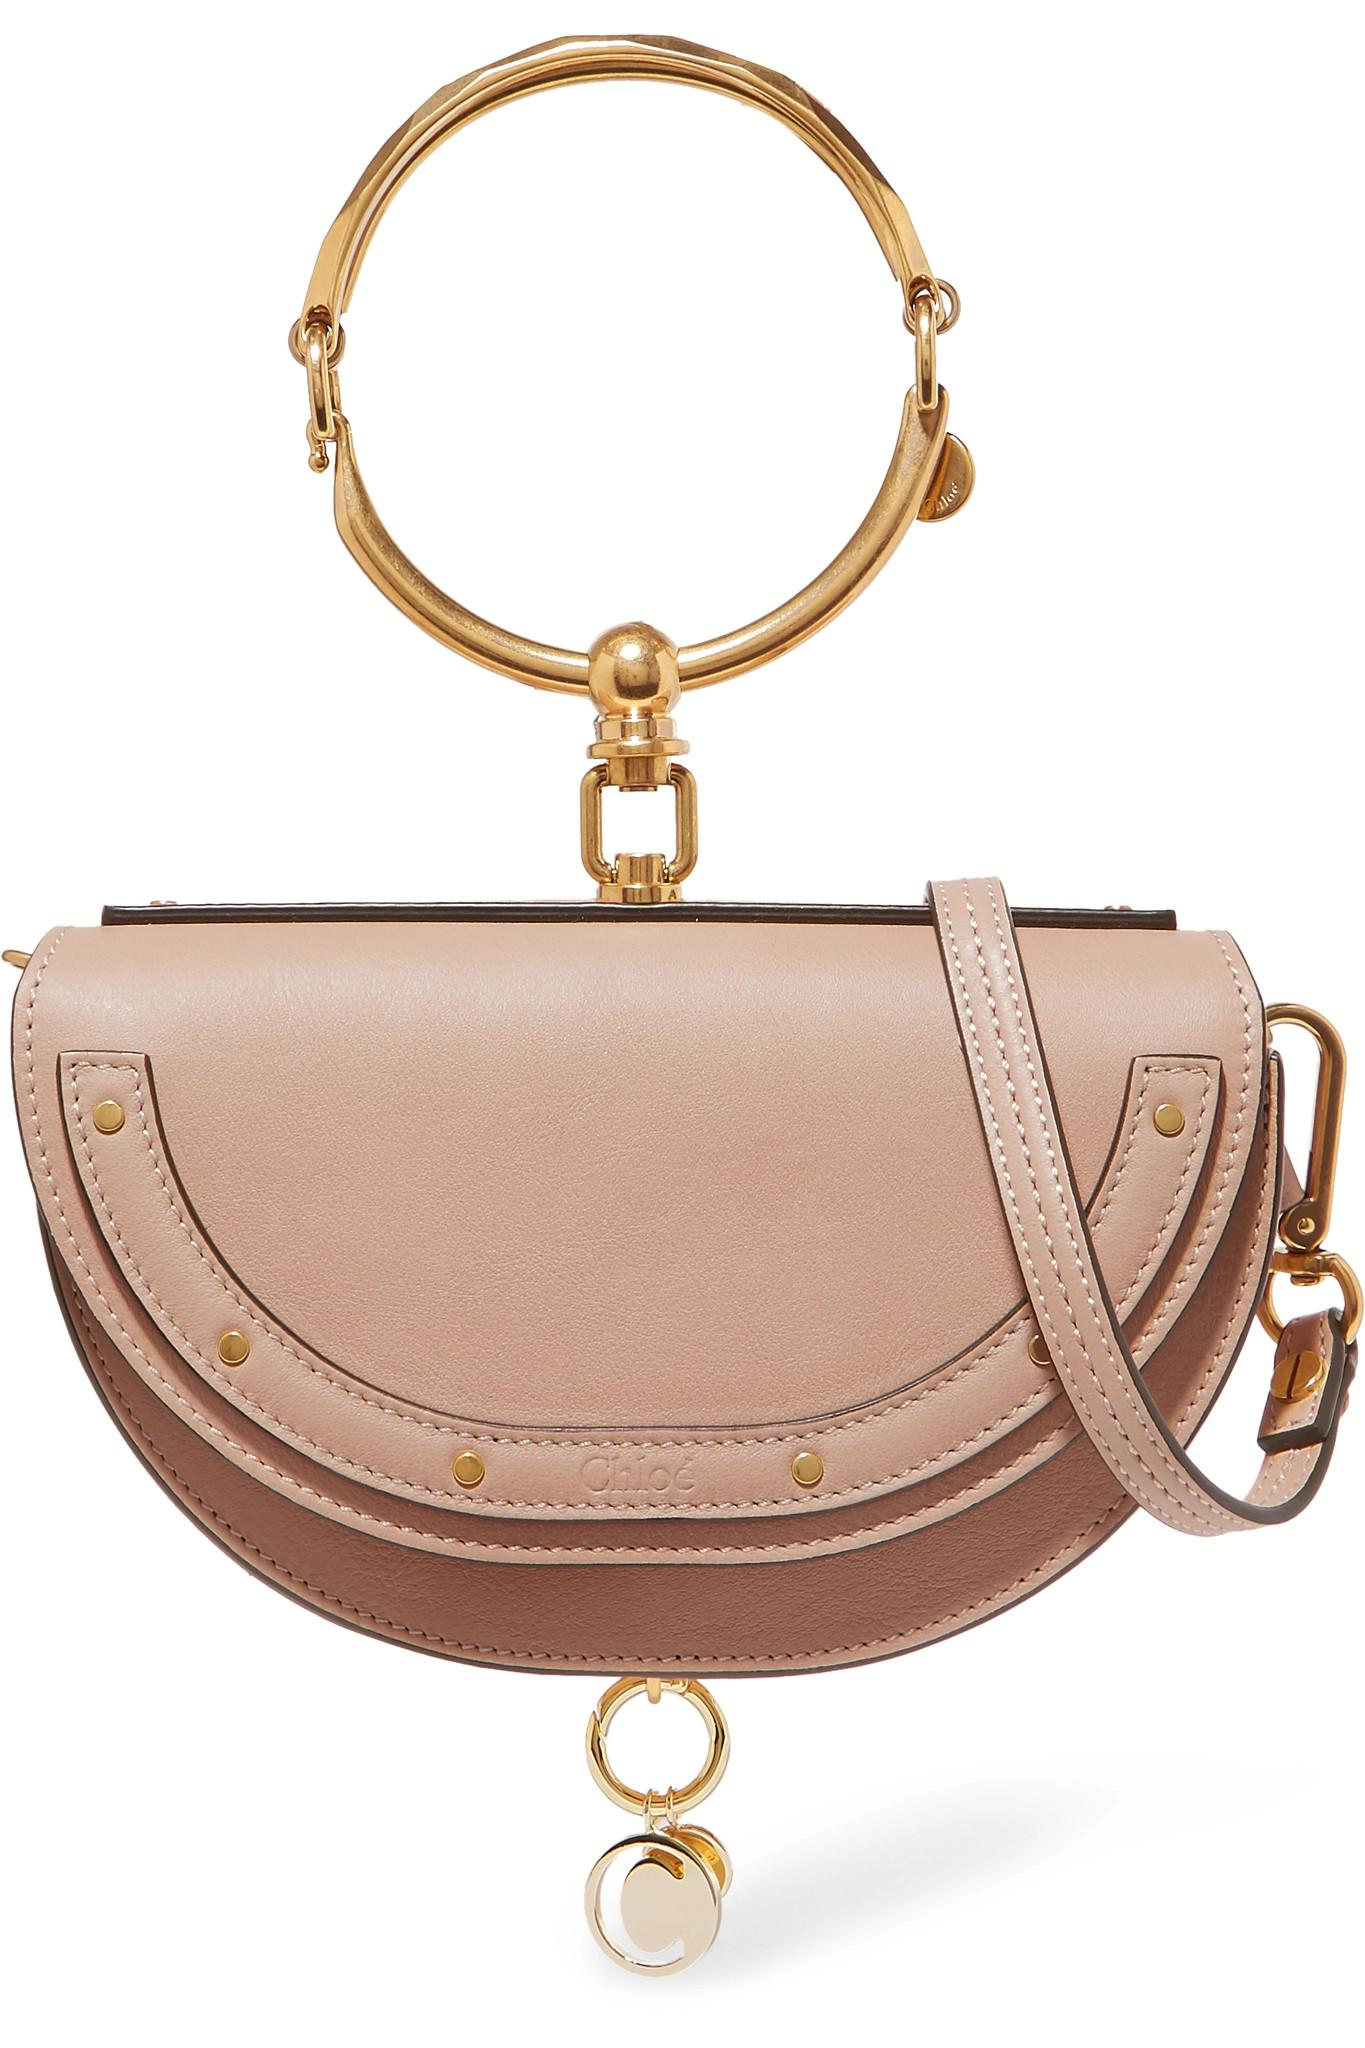 f408813fb523 Chloé. Women s Natural Nile Bracelet Mini Textured-leather Shoulder Bag